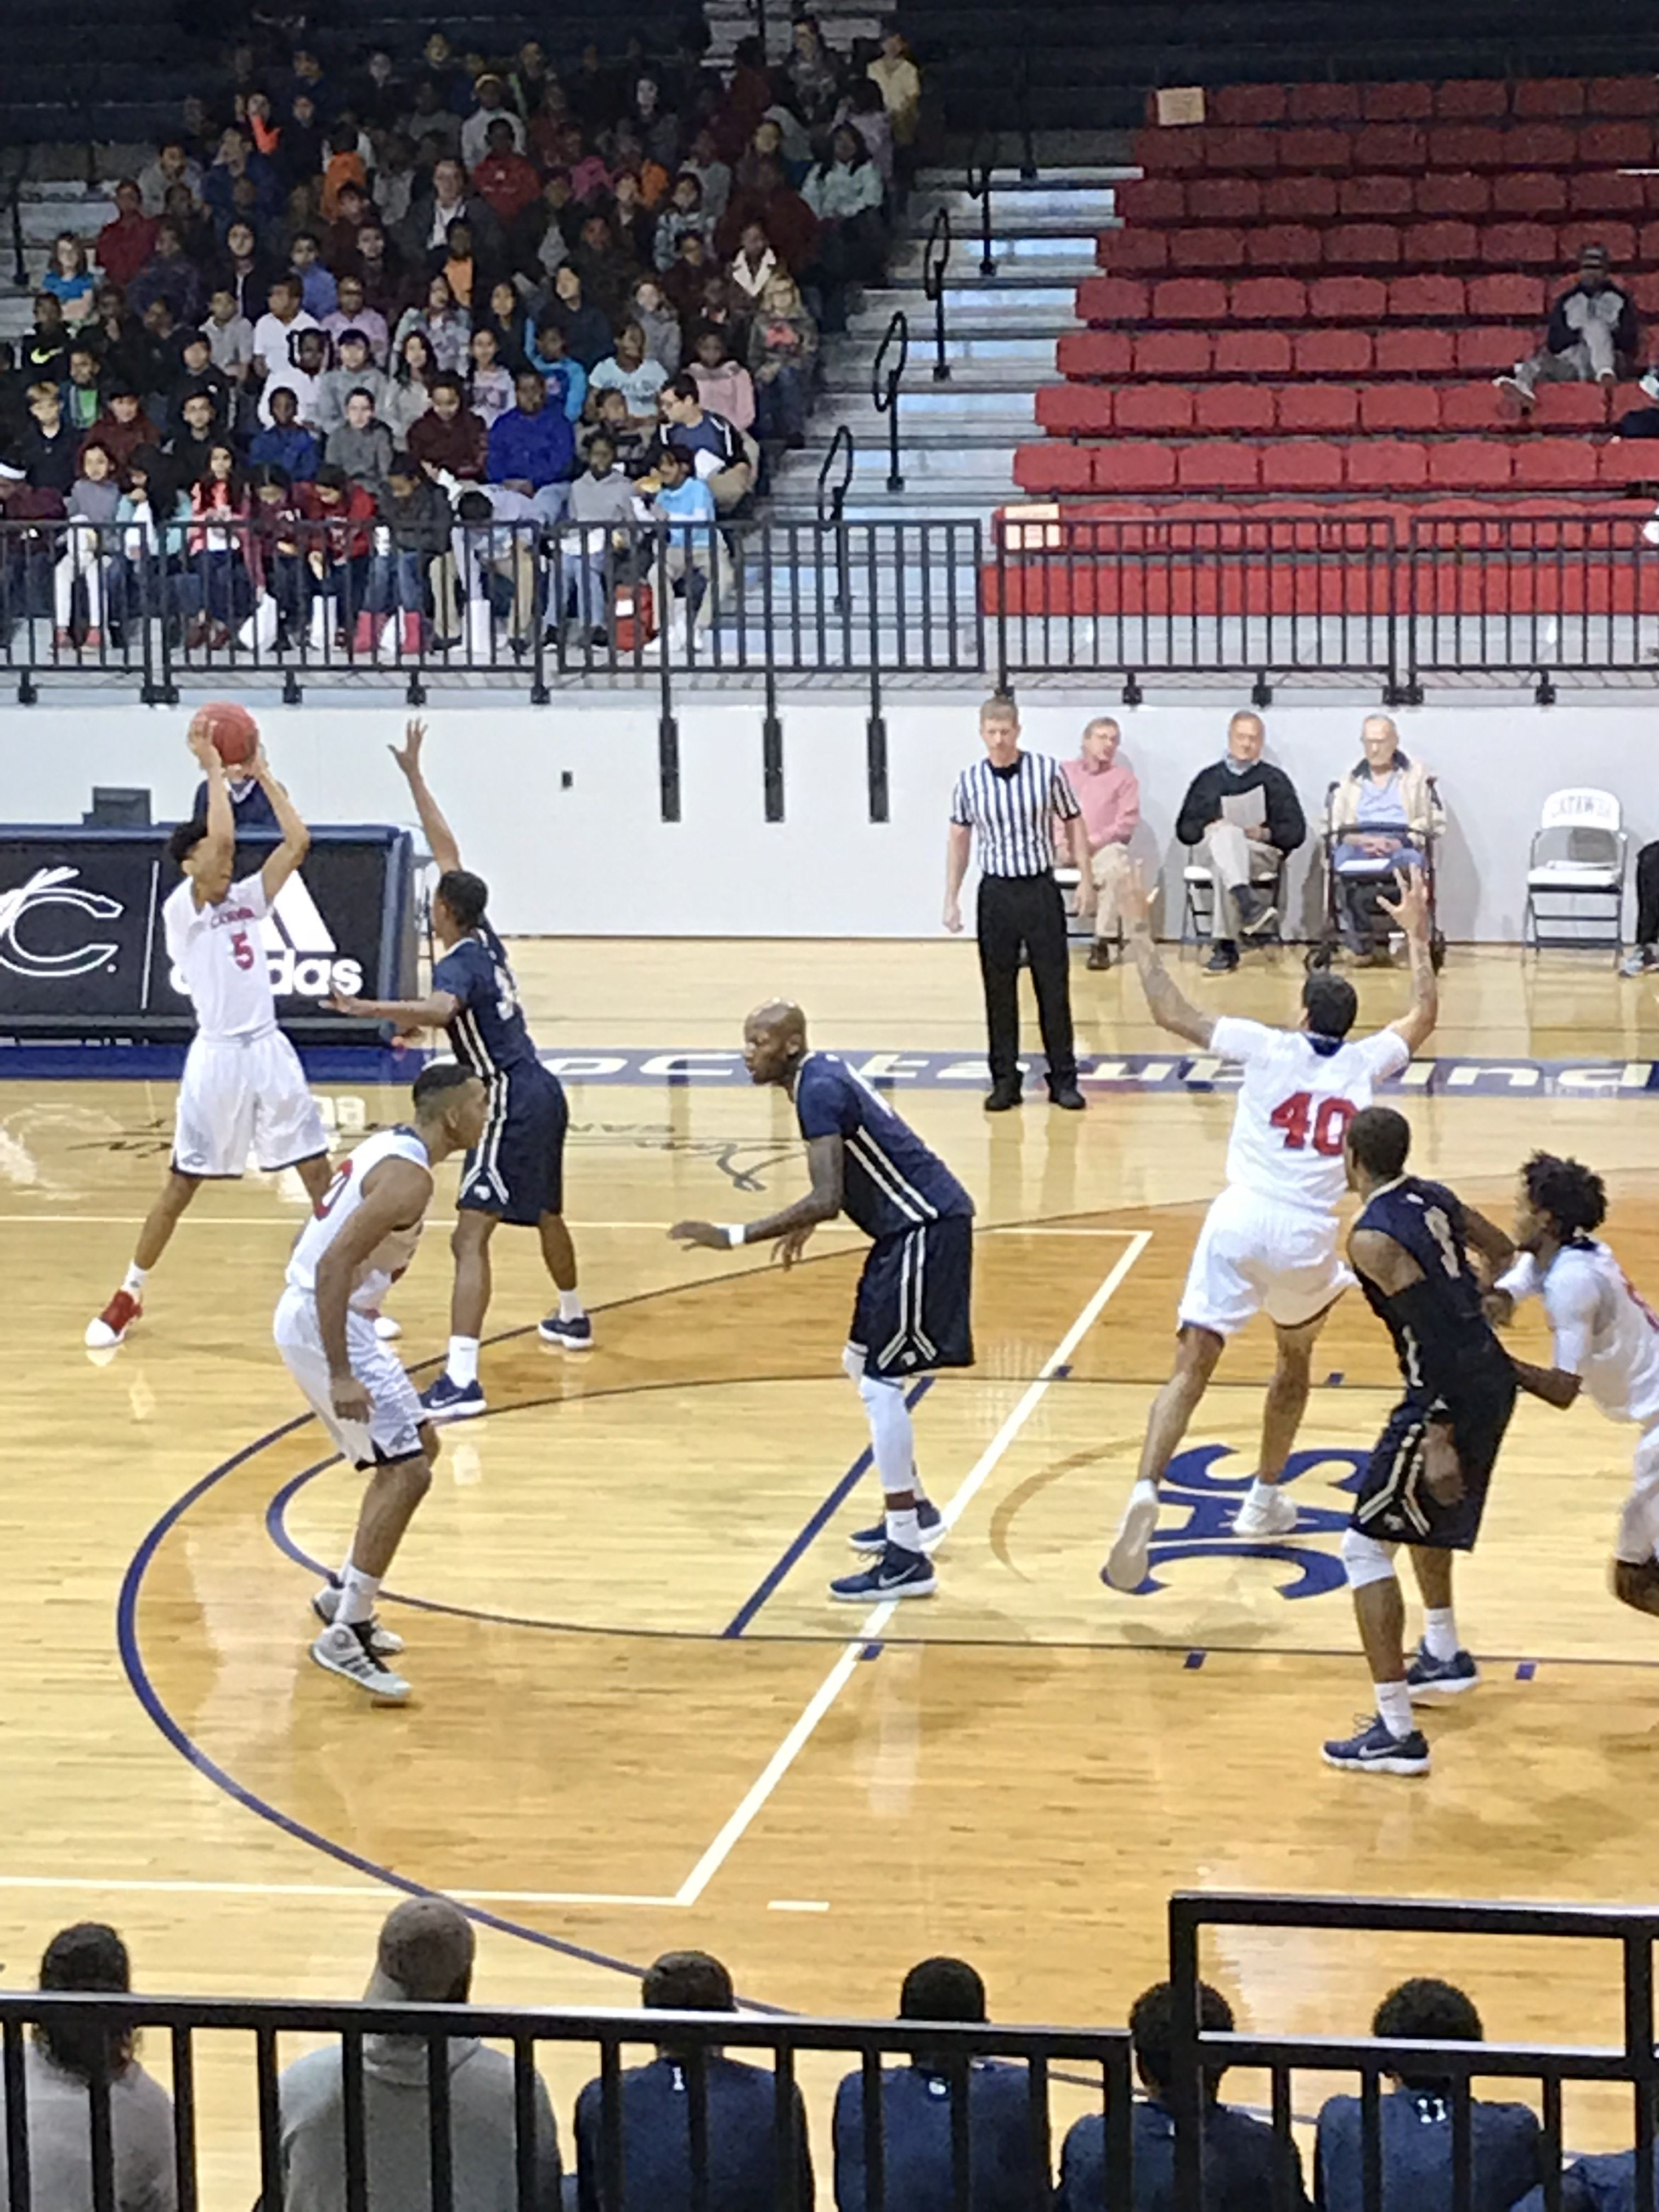 Catawba College Basketball Game Trip